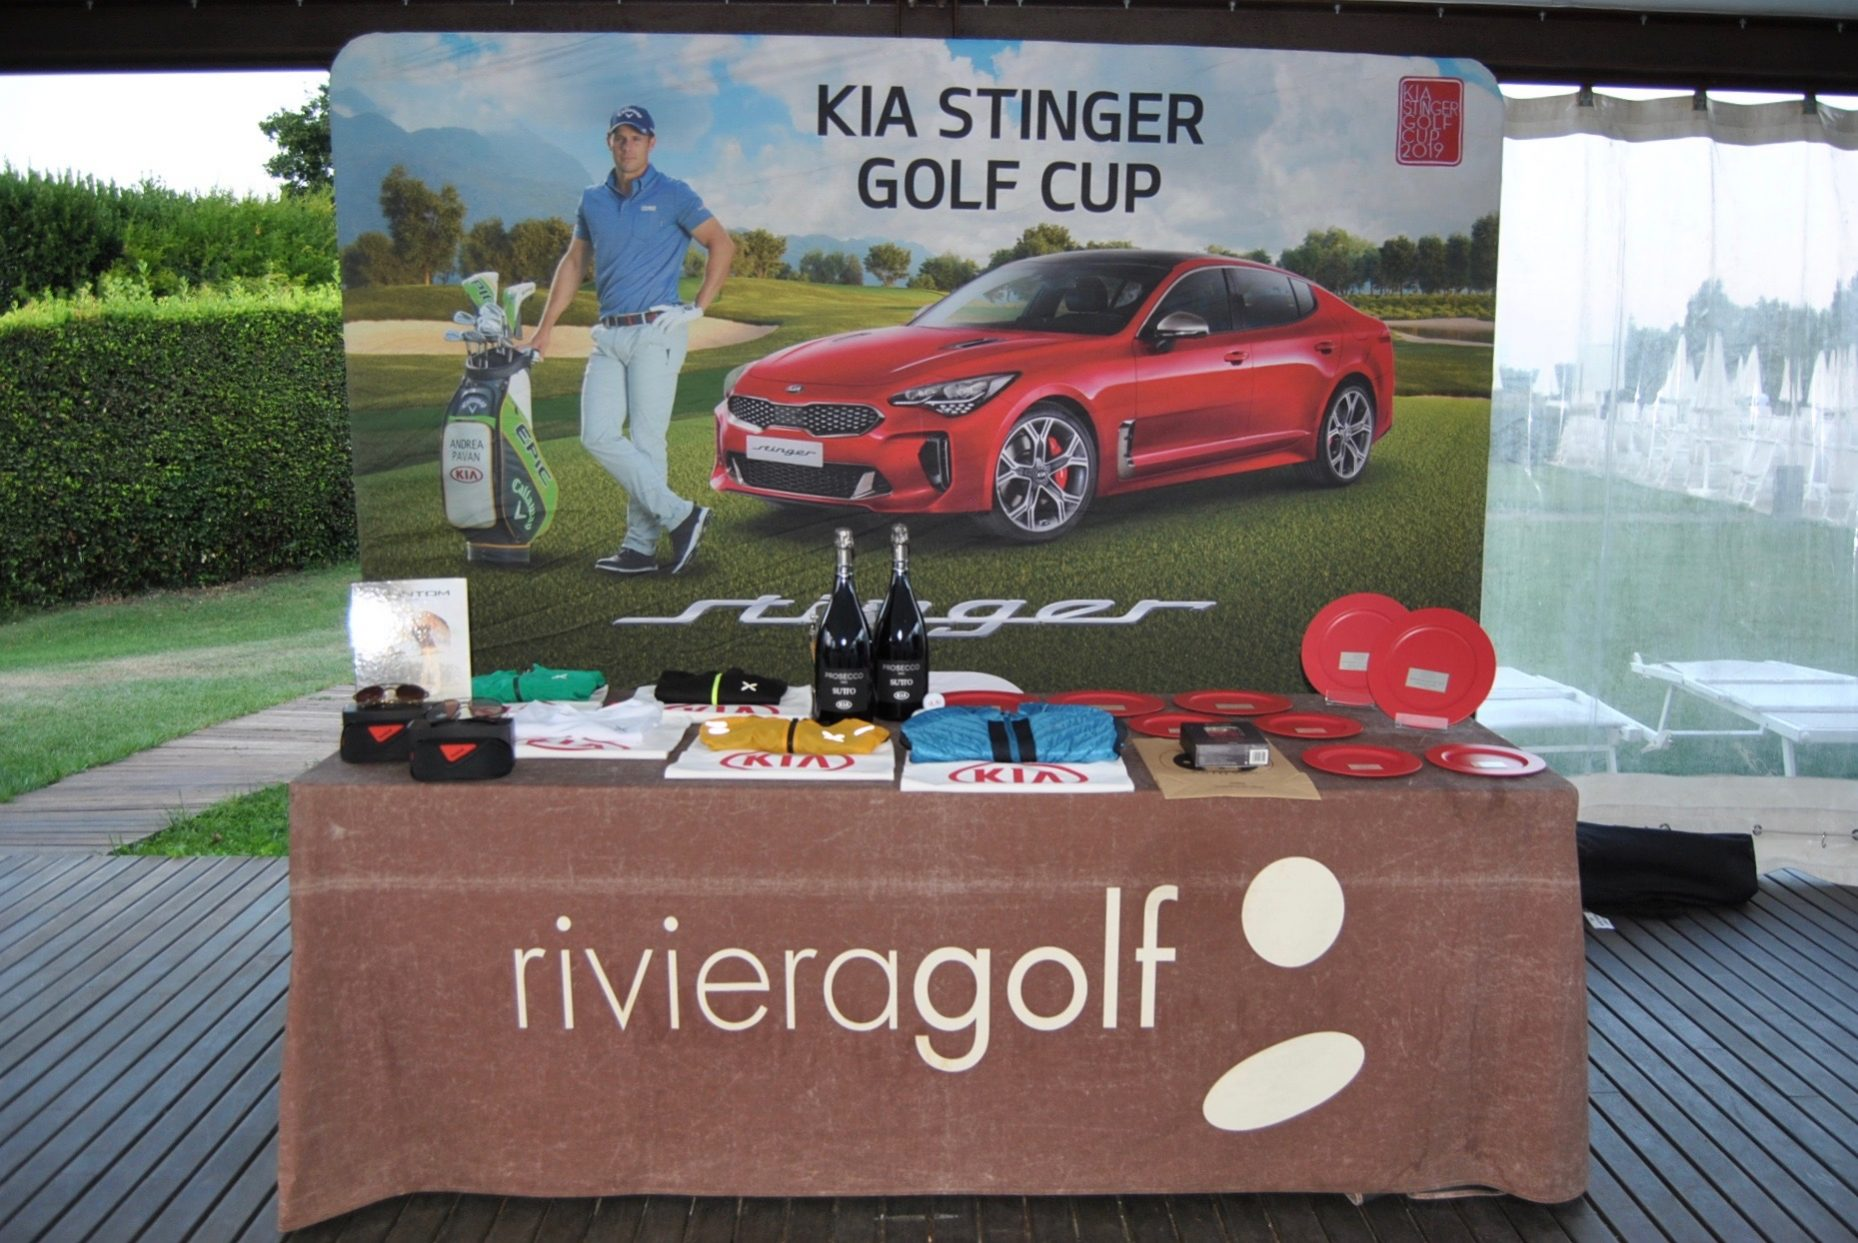 Kia Stinger Golf Cup Boattini